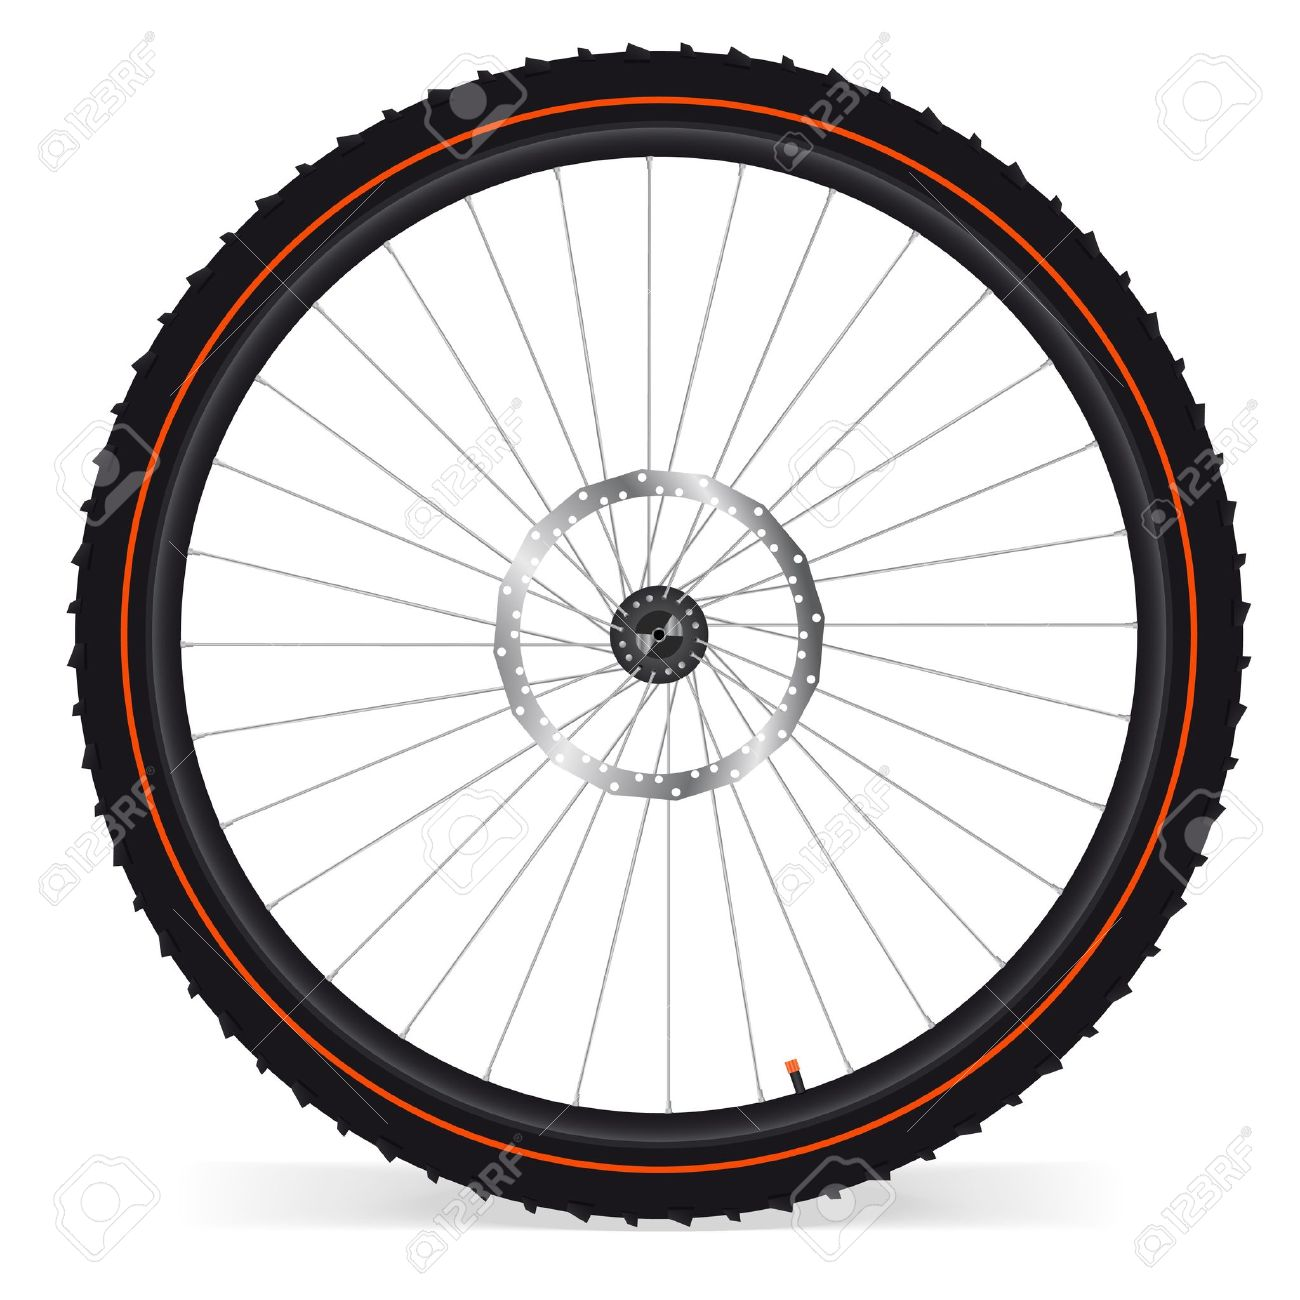 Bike Wheel Royalty Free Cliparts, Vectors, And Stock Illustration.